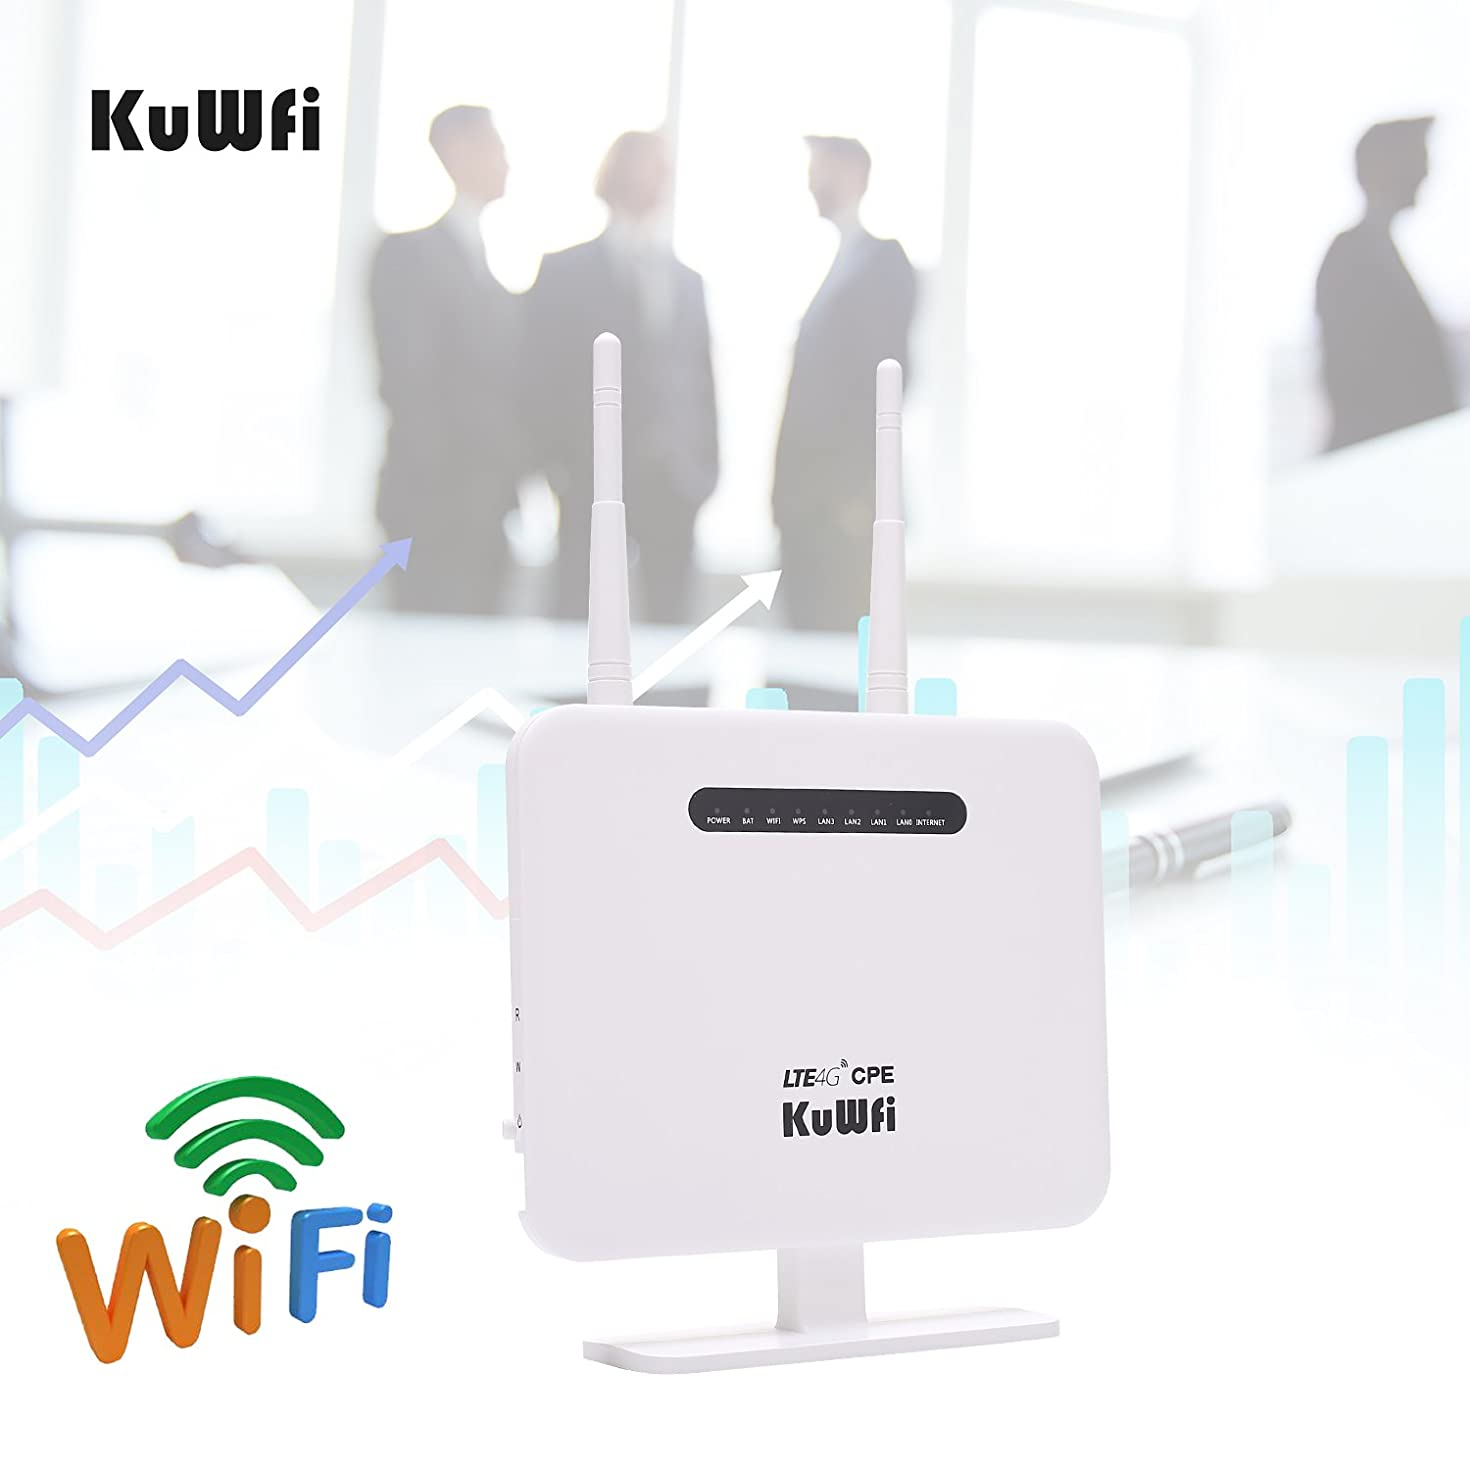 KuWFi 4G LTE SIM Router,300Mbps Unlocked 4G LTE CPE Wireless Router 3G 4G 150Mbps CAT4 Mobile WFi Hotspot with SIM Card Solt for USA/CA/Mexico with B2/B4/B5 Network Band US Version AT&T,T Mobile